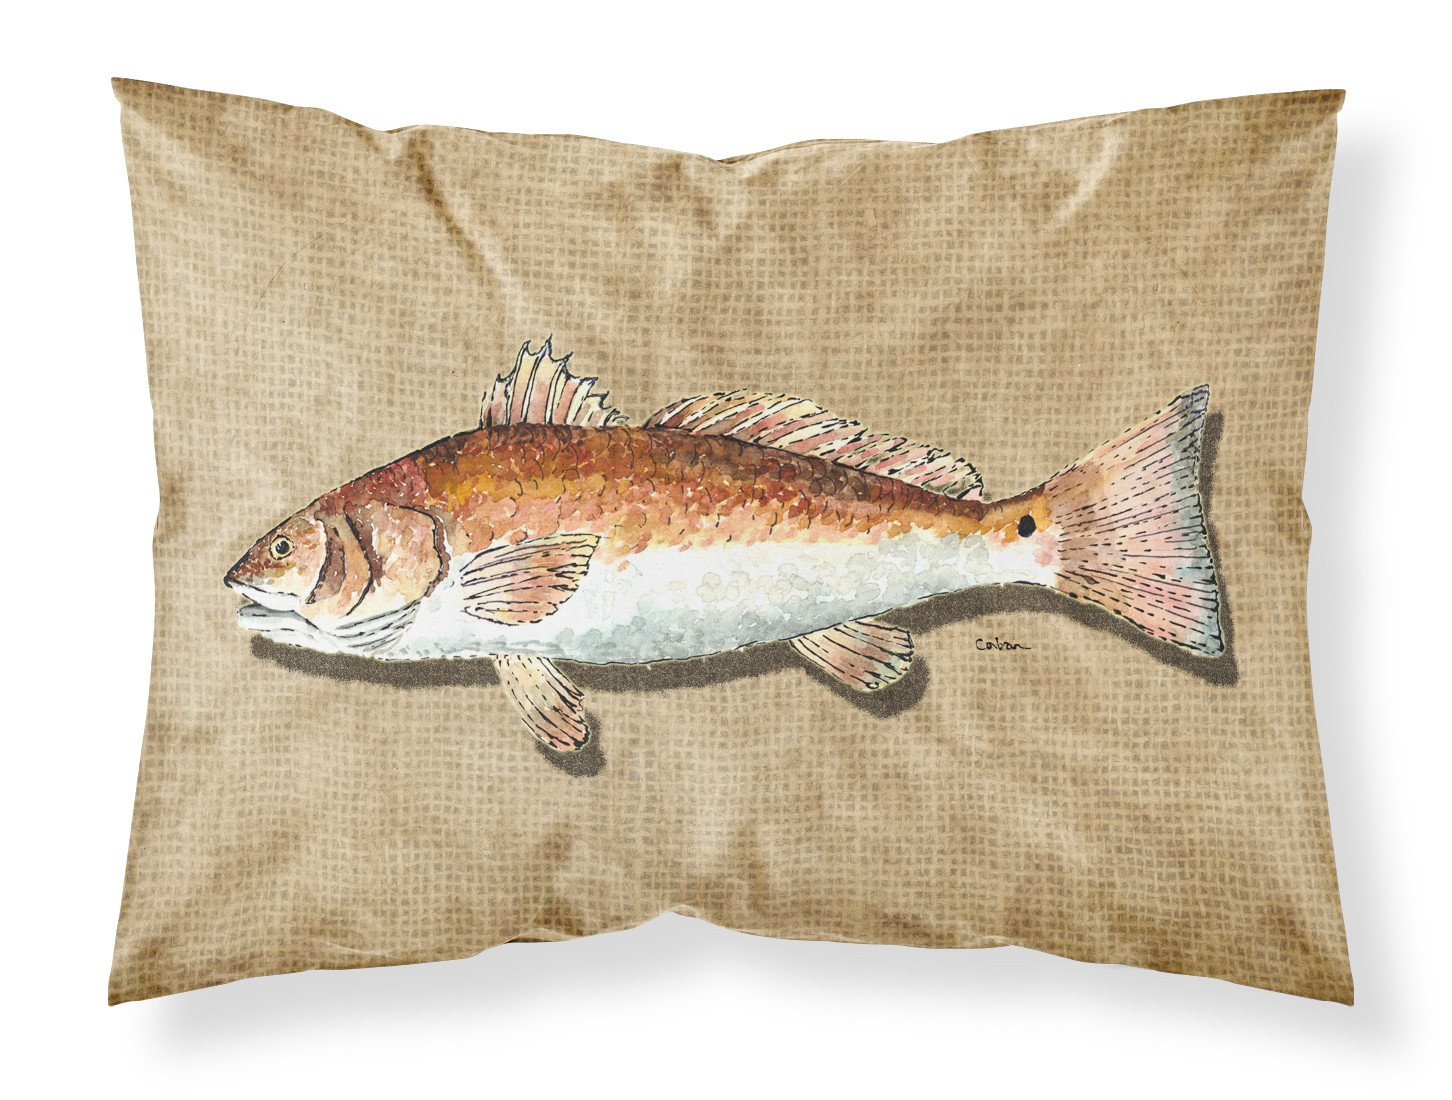 Red Fish Moisture wicking Fabric standard pillowcase by Caroline's Treasures